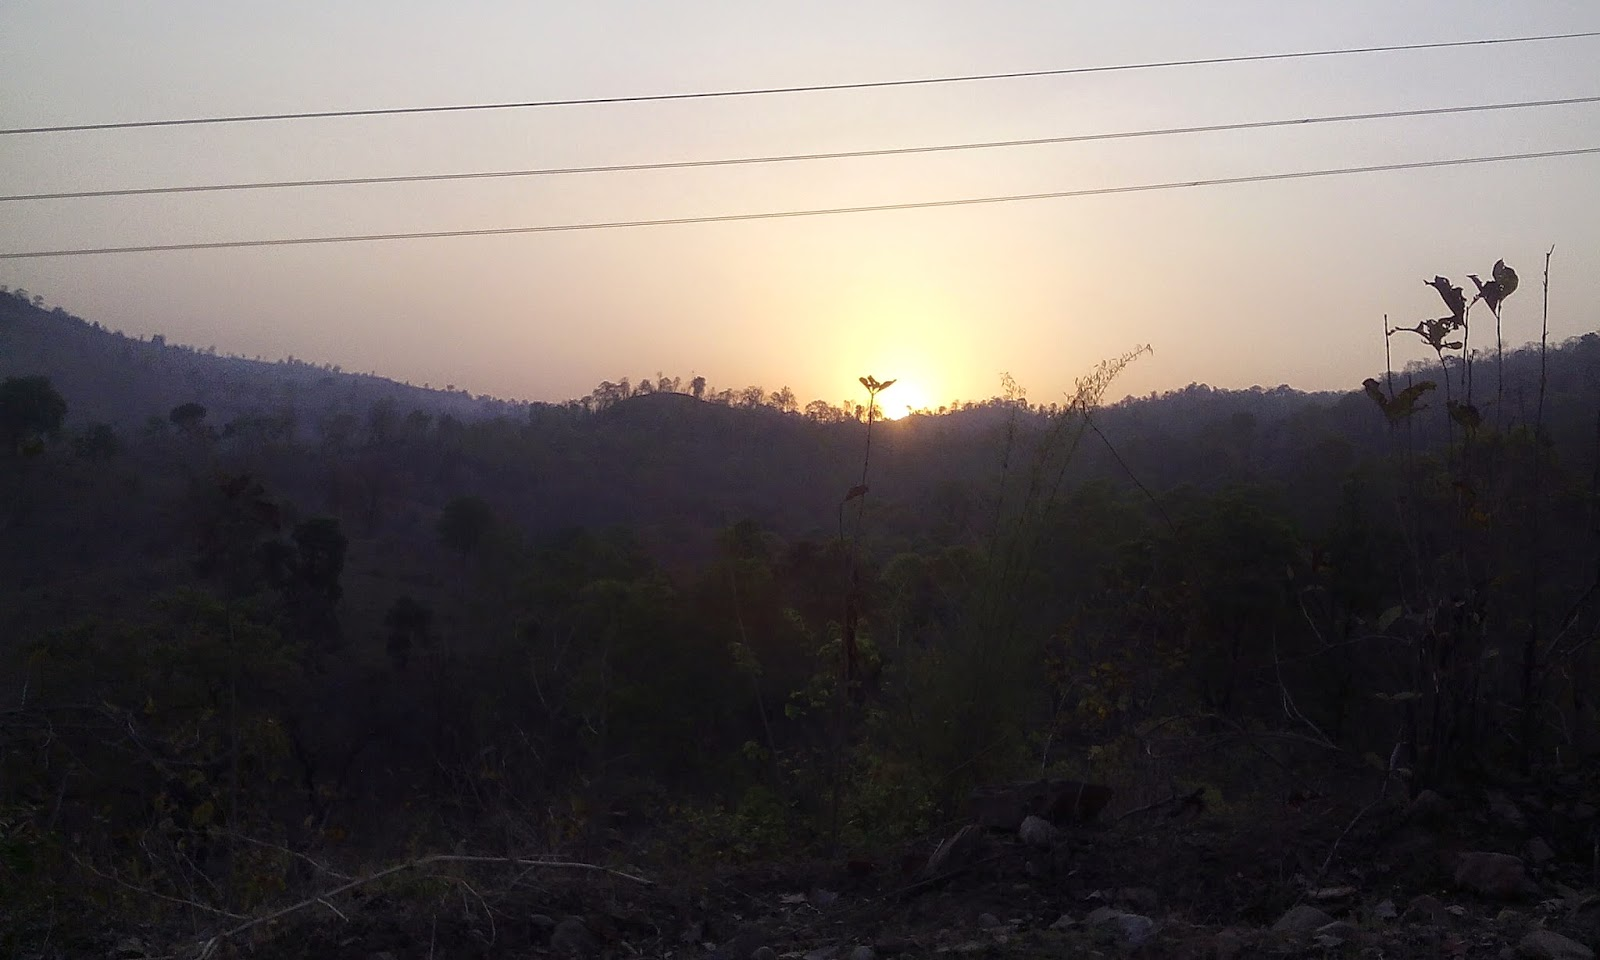 sunrise image in satpura